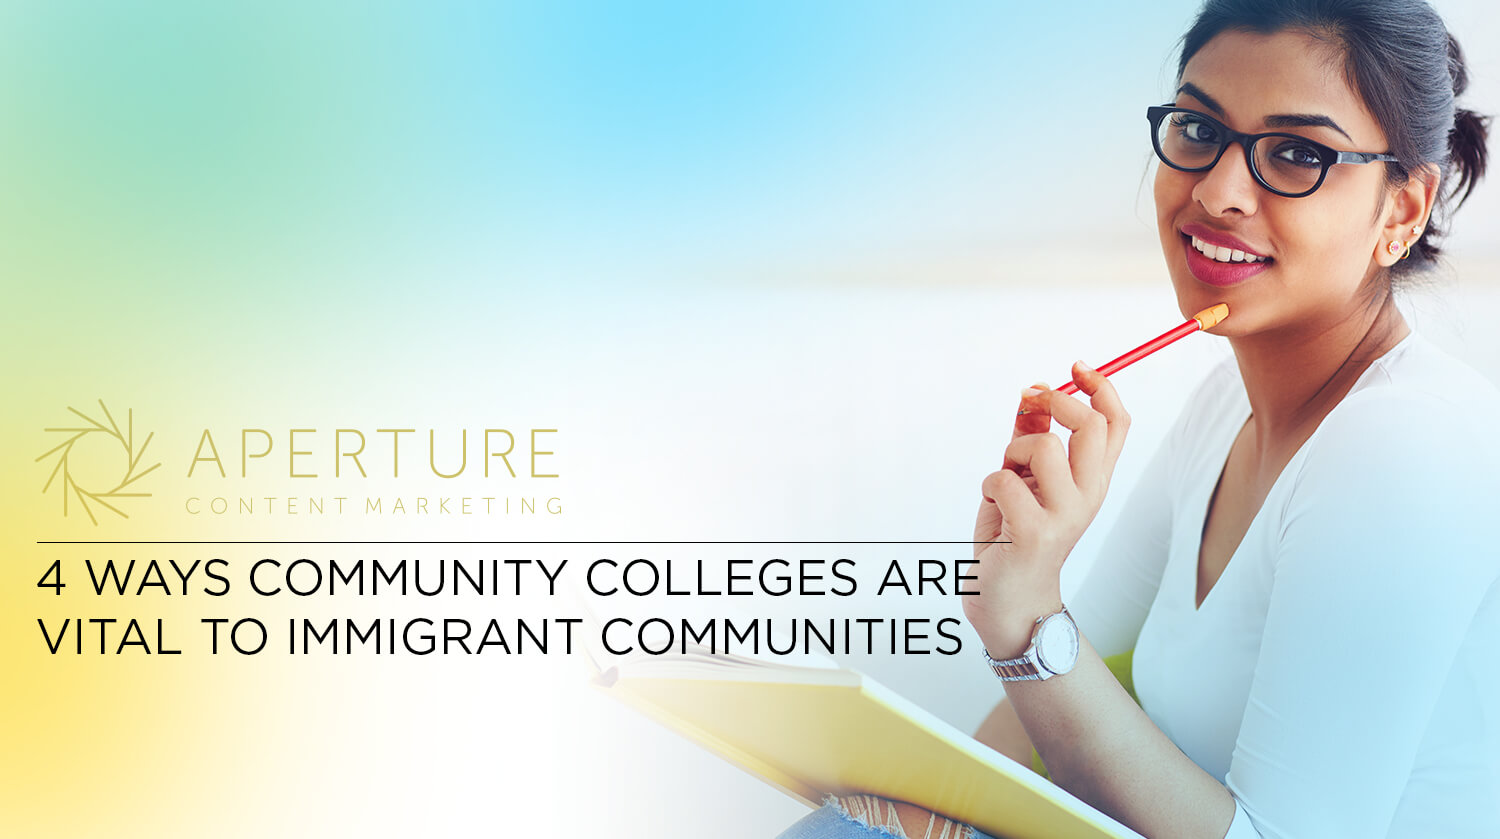 4 Ways Community Colleges Are Vital to Immigrant Communities